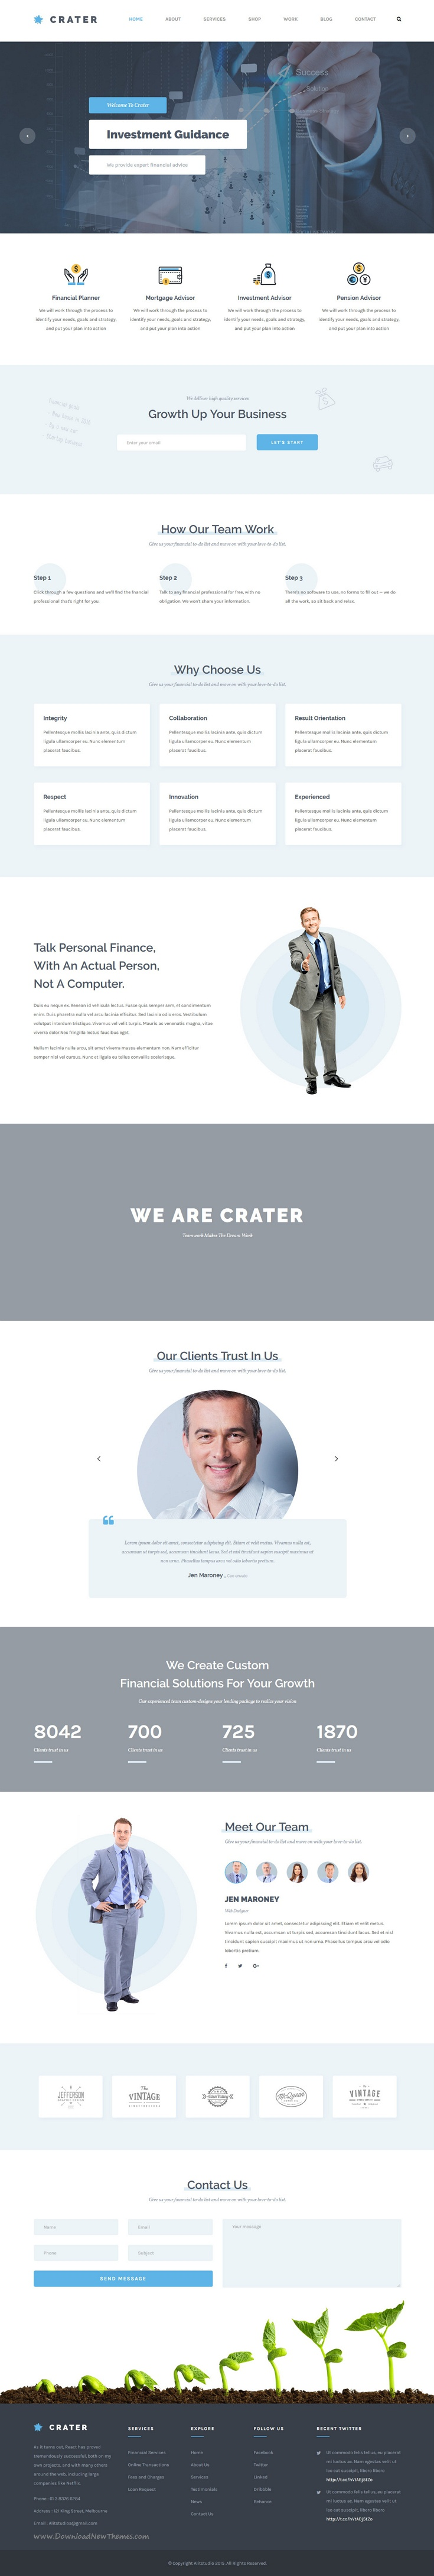 Crater - Professional HTML5 Business Template